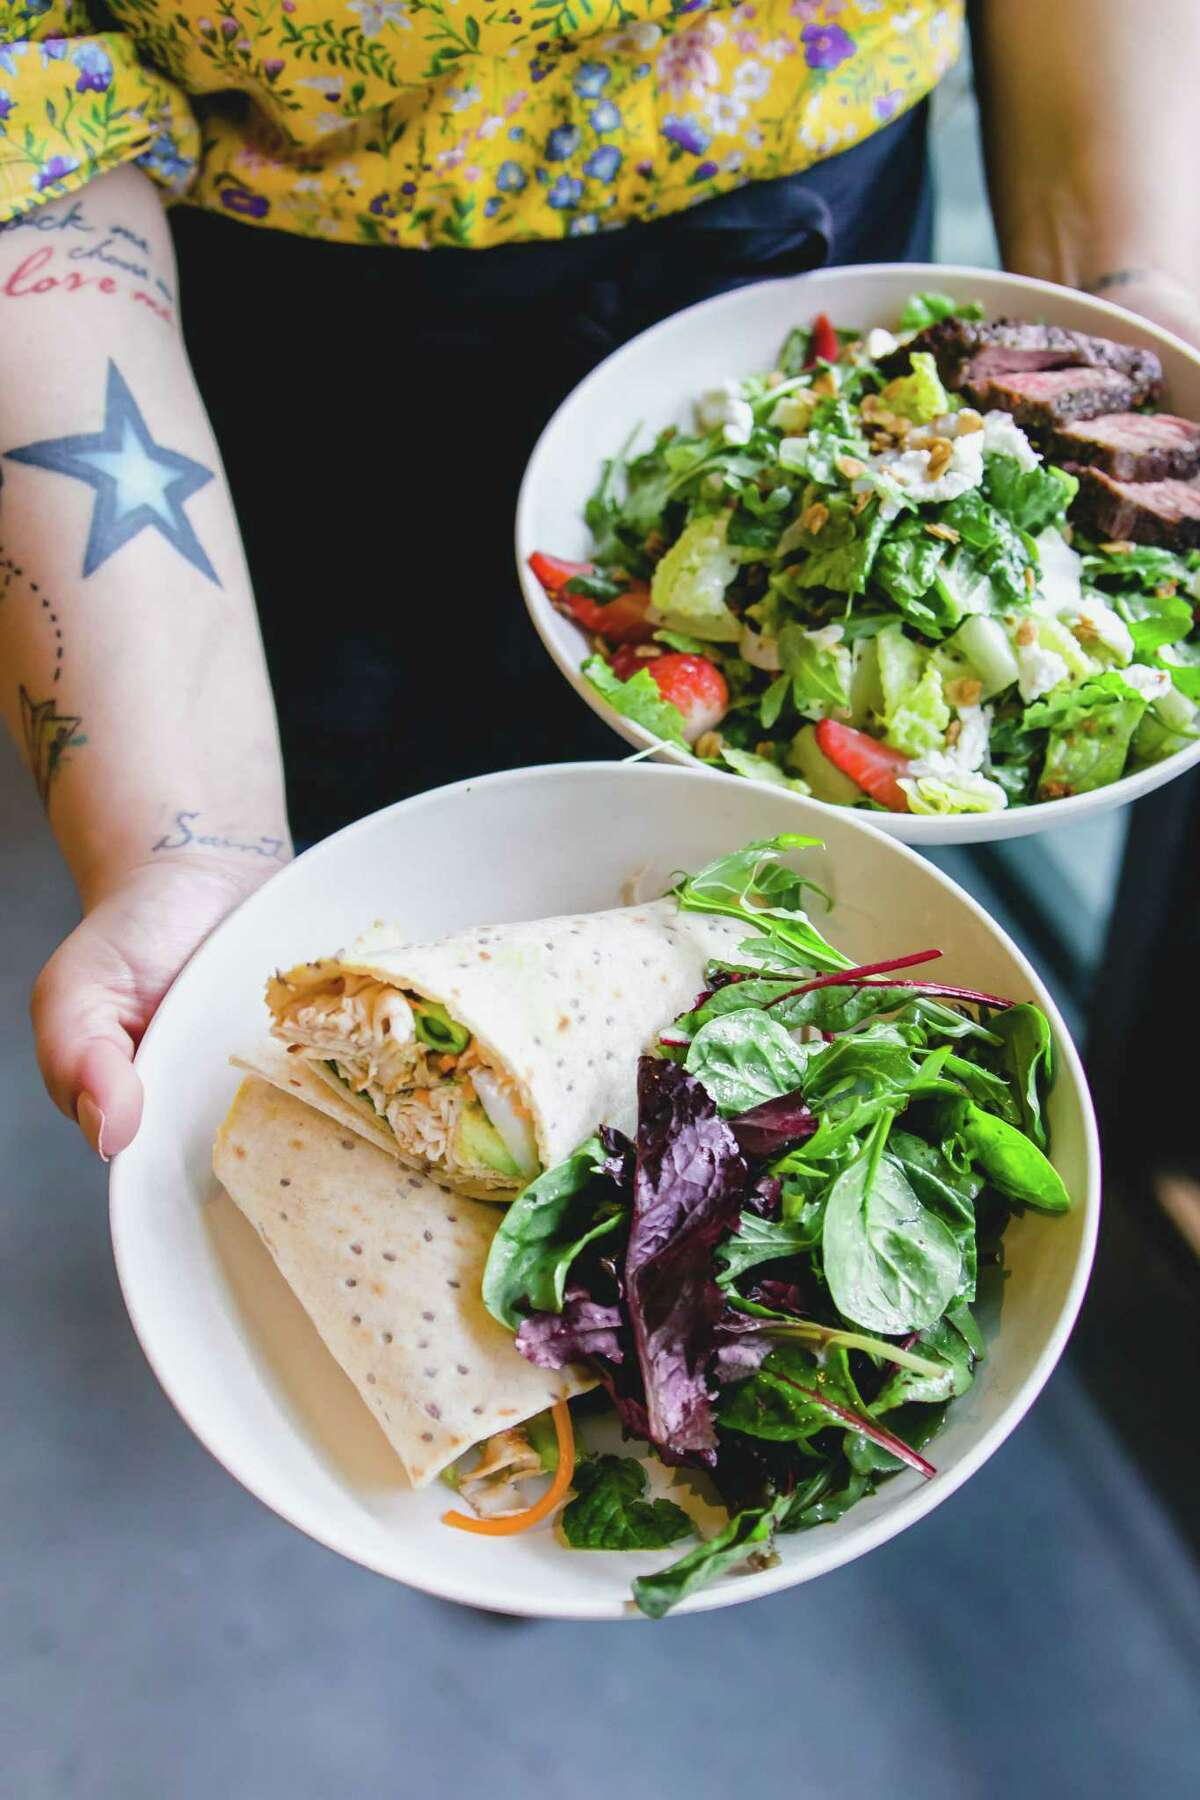 Flower Child, the healthy, fast-casual restaurant brand, has opened in The Woodlands at 1900 Lake Woodlands Dr.